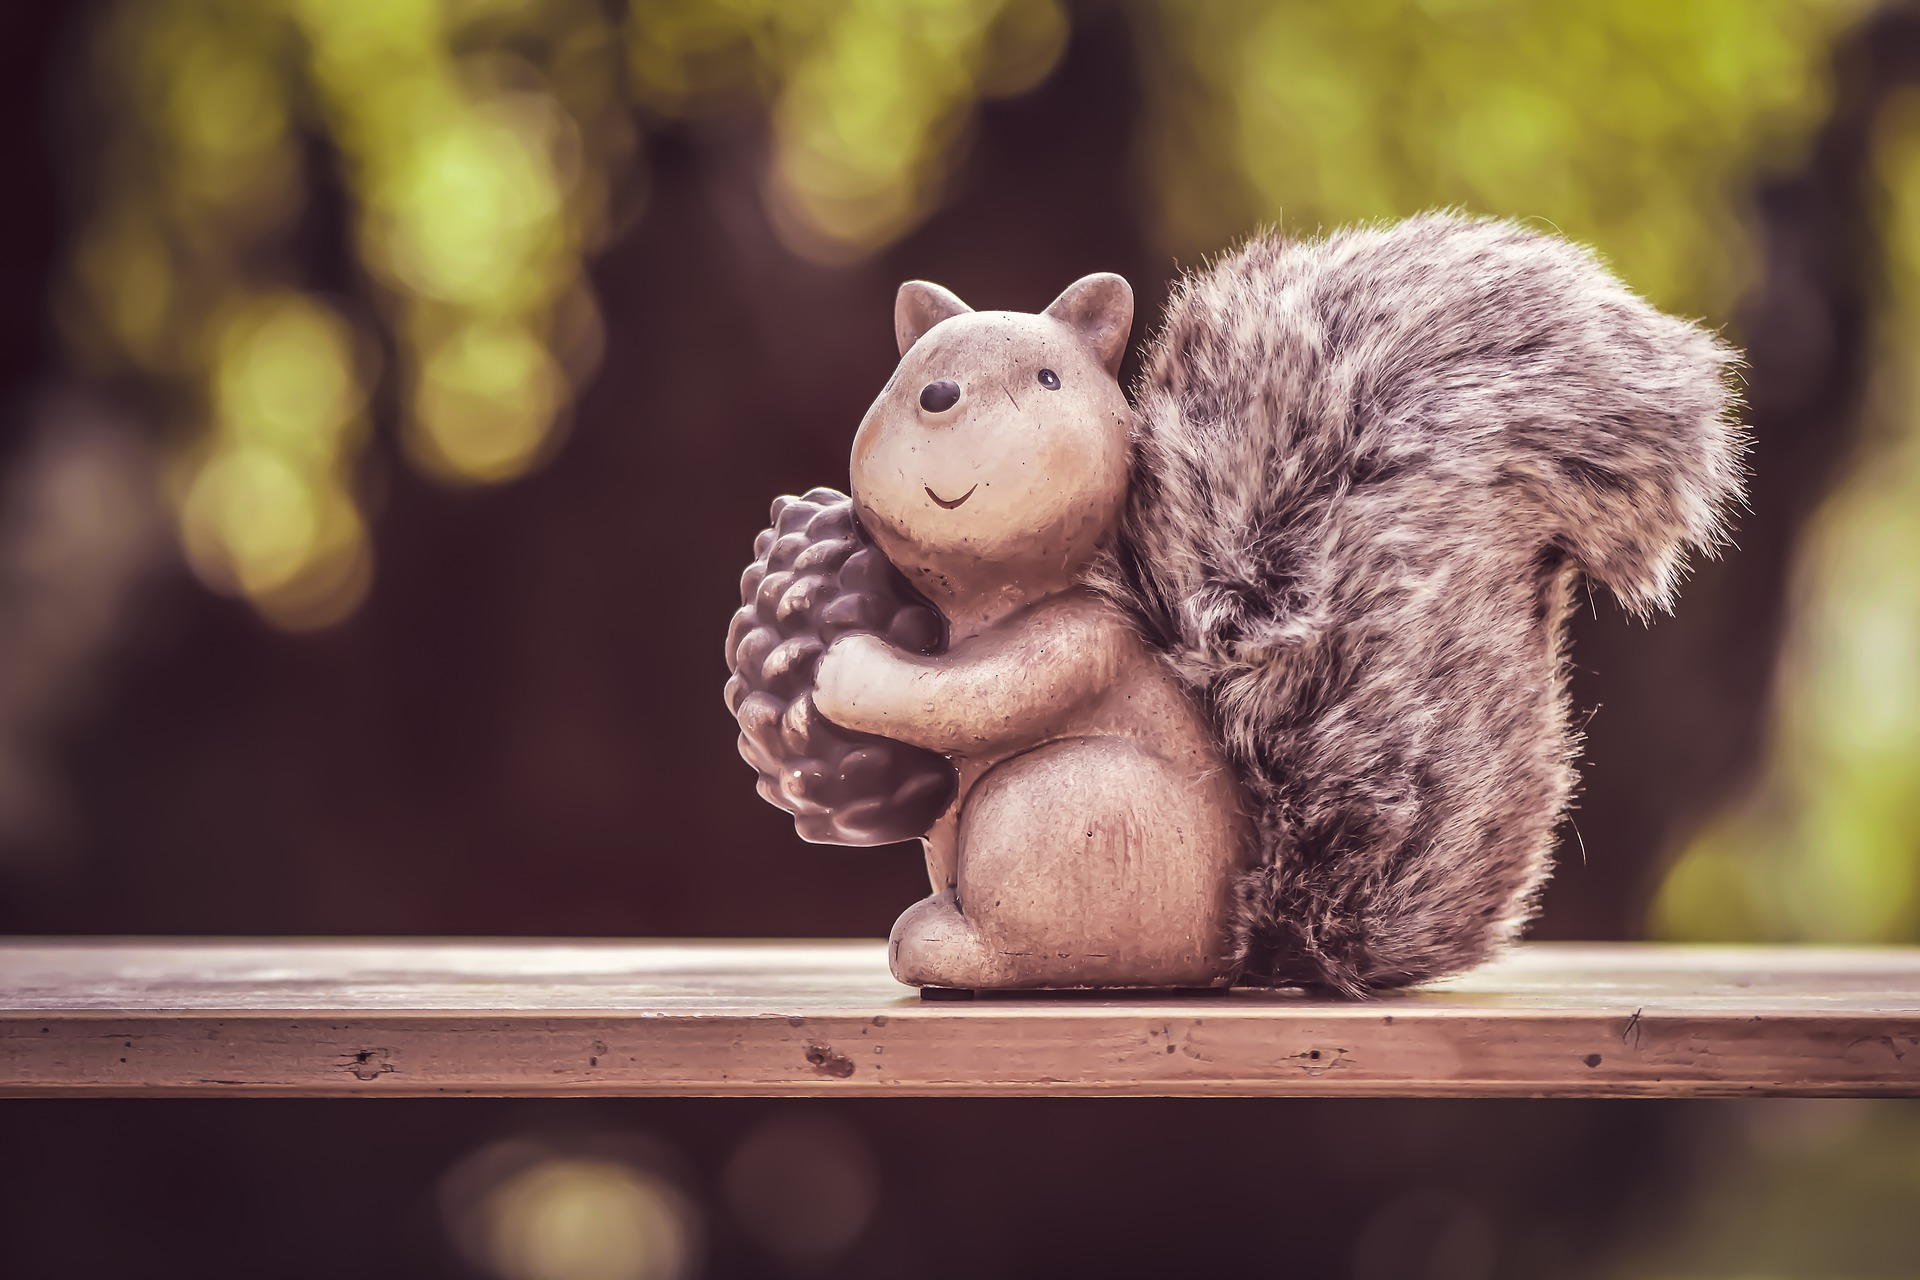 funny squirrel 1920x1280 - Free image bank